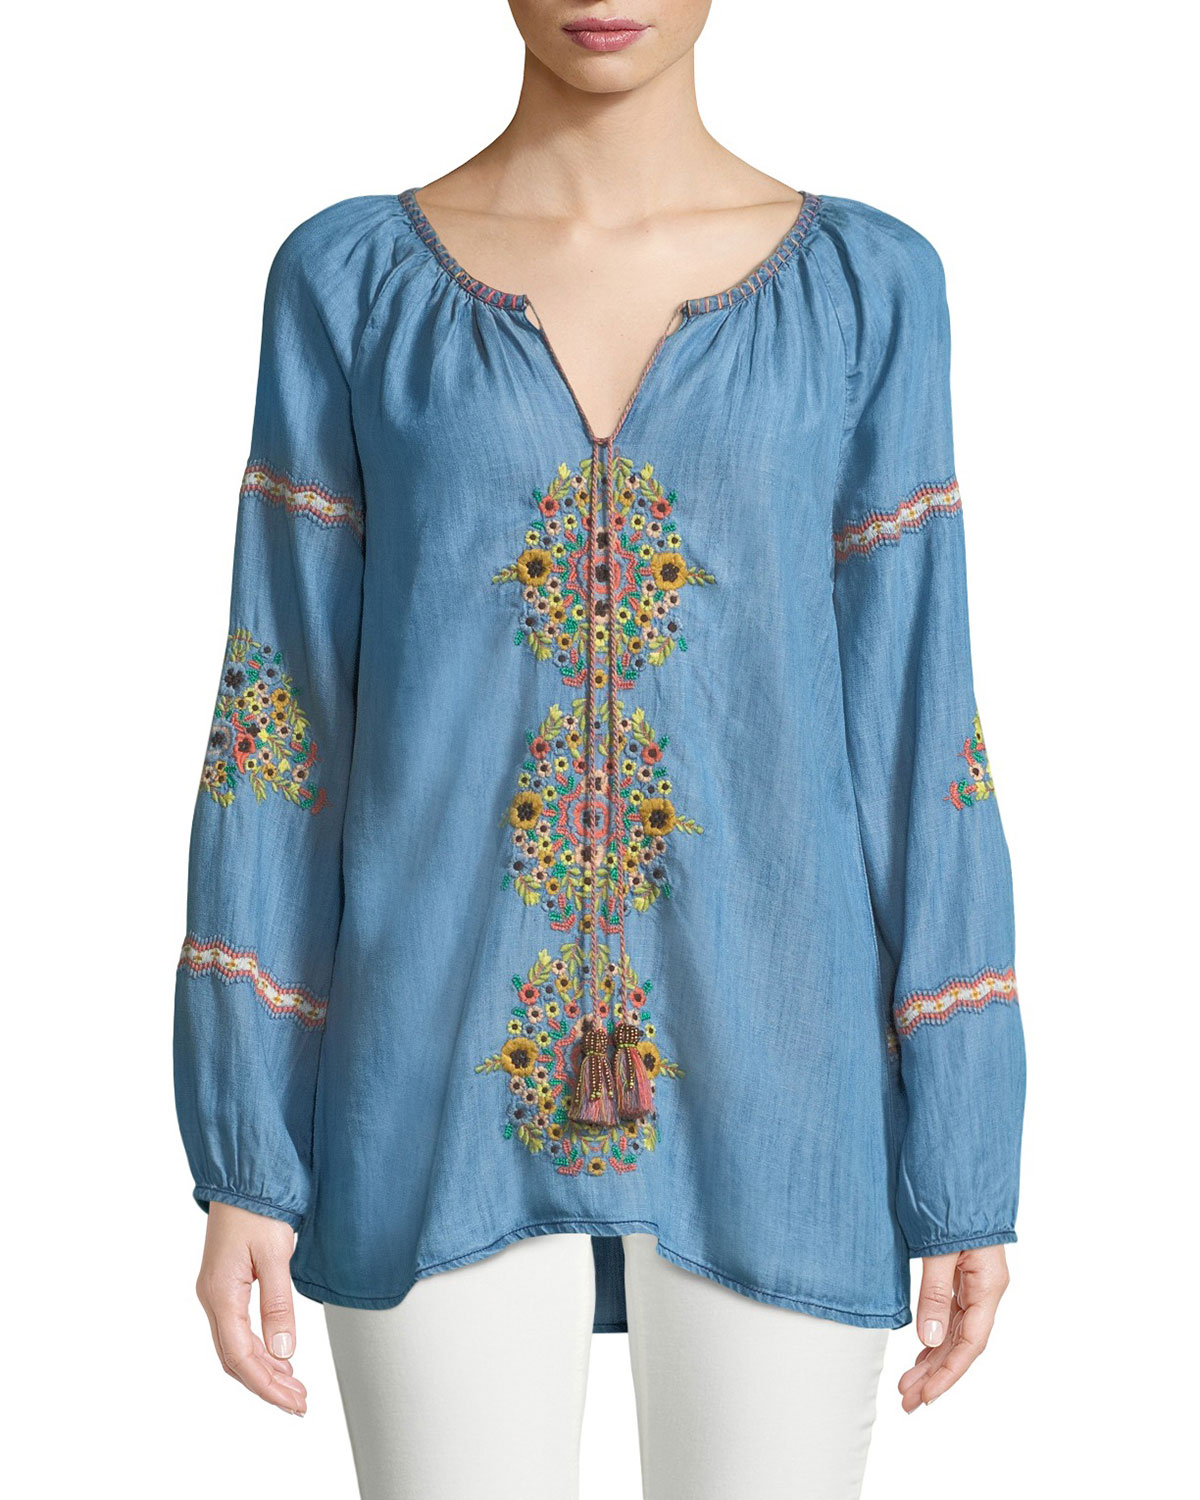 Marie Embroidered Denim Tunic Top, Plus Size